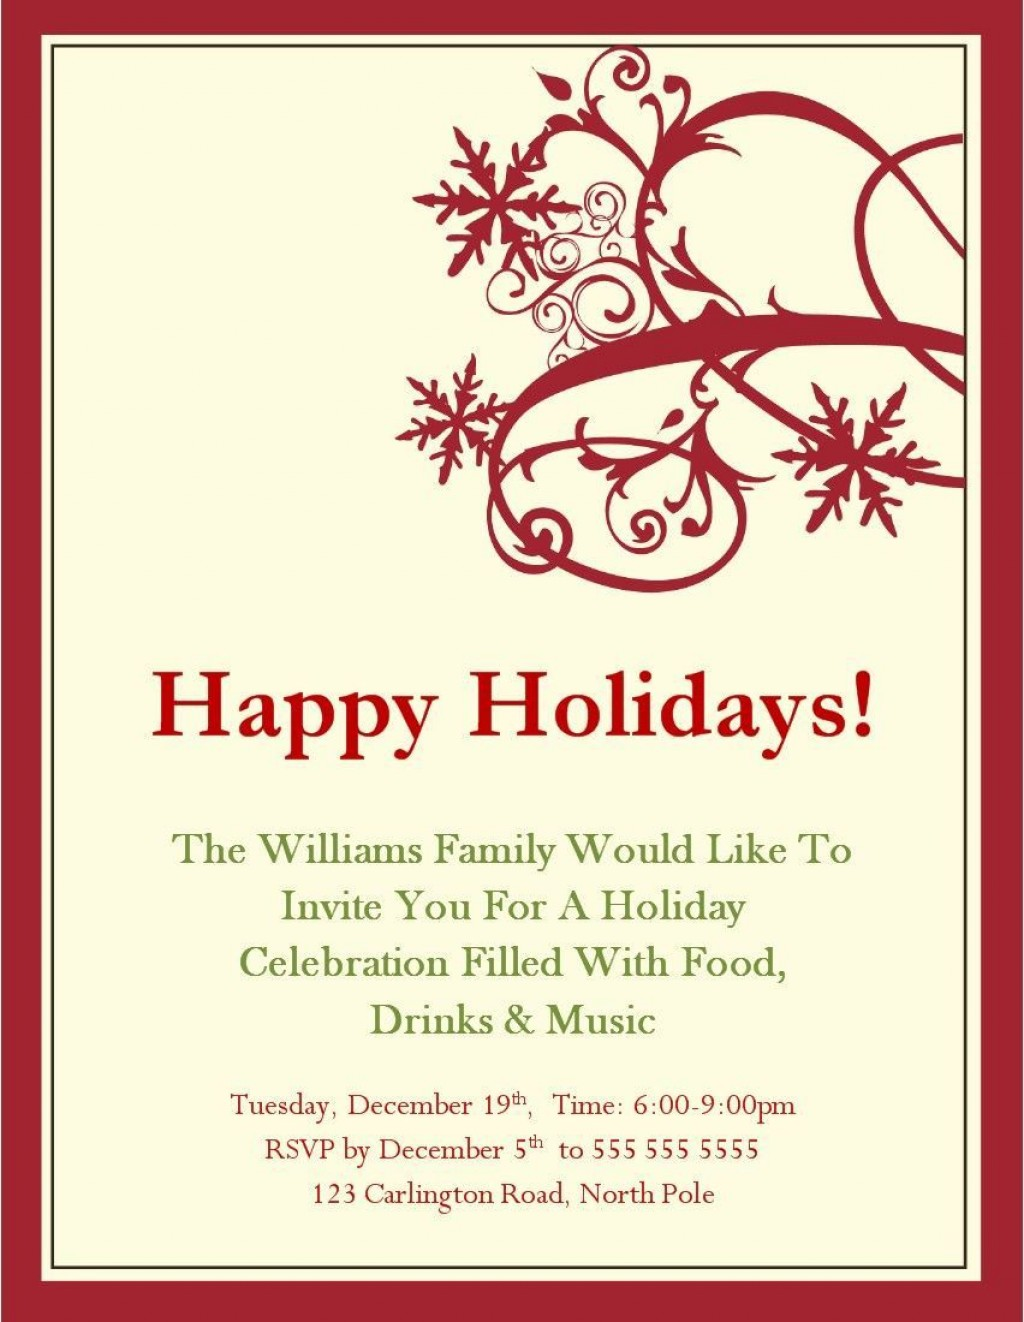 004 Exceptional Xma Party Invite Template Free Sample  Holiday Invitation Word Printable Office Christma DownloadLarge